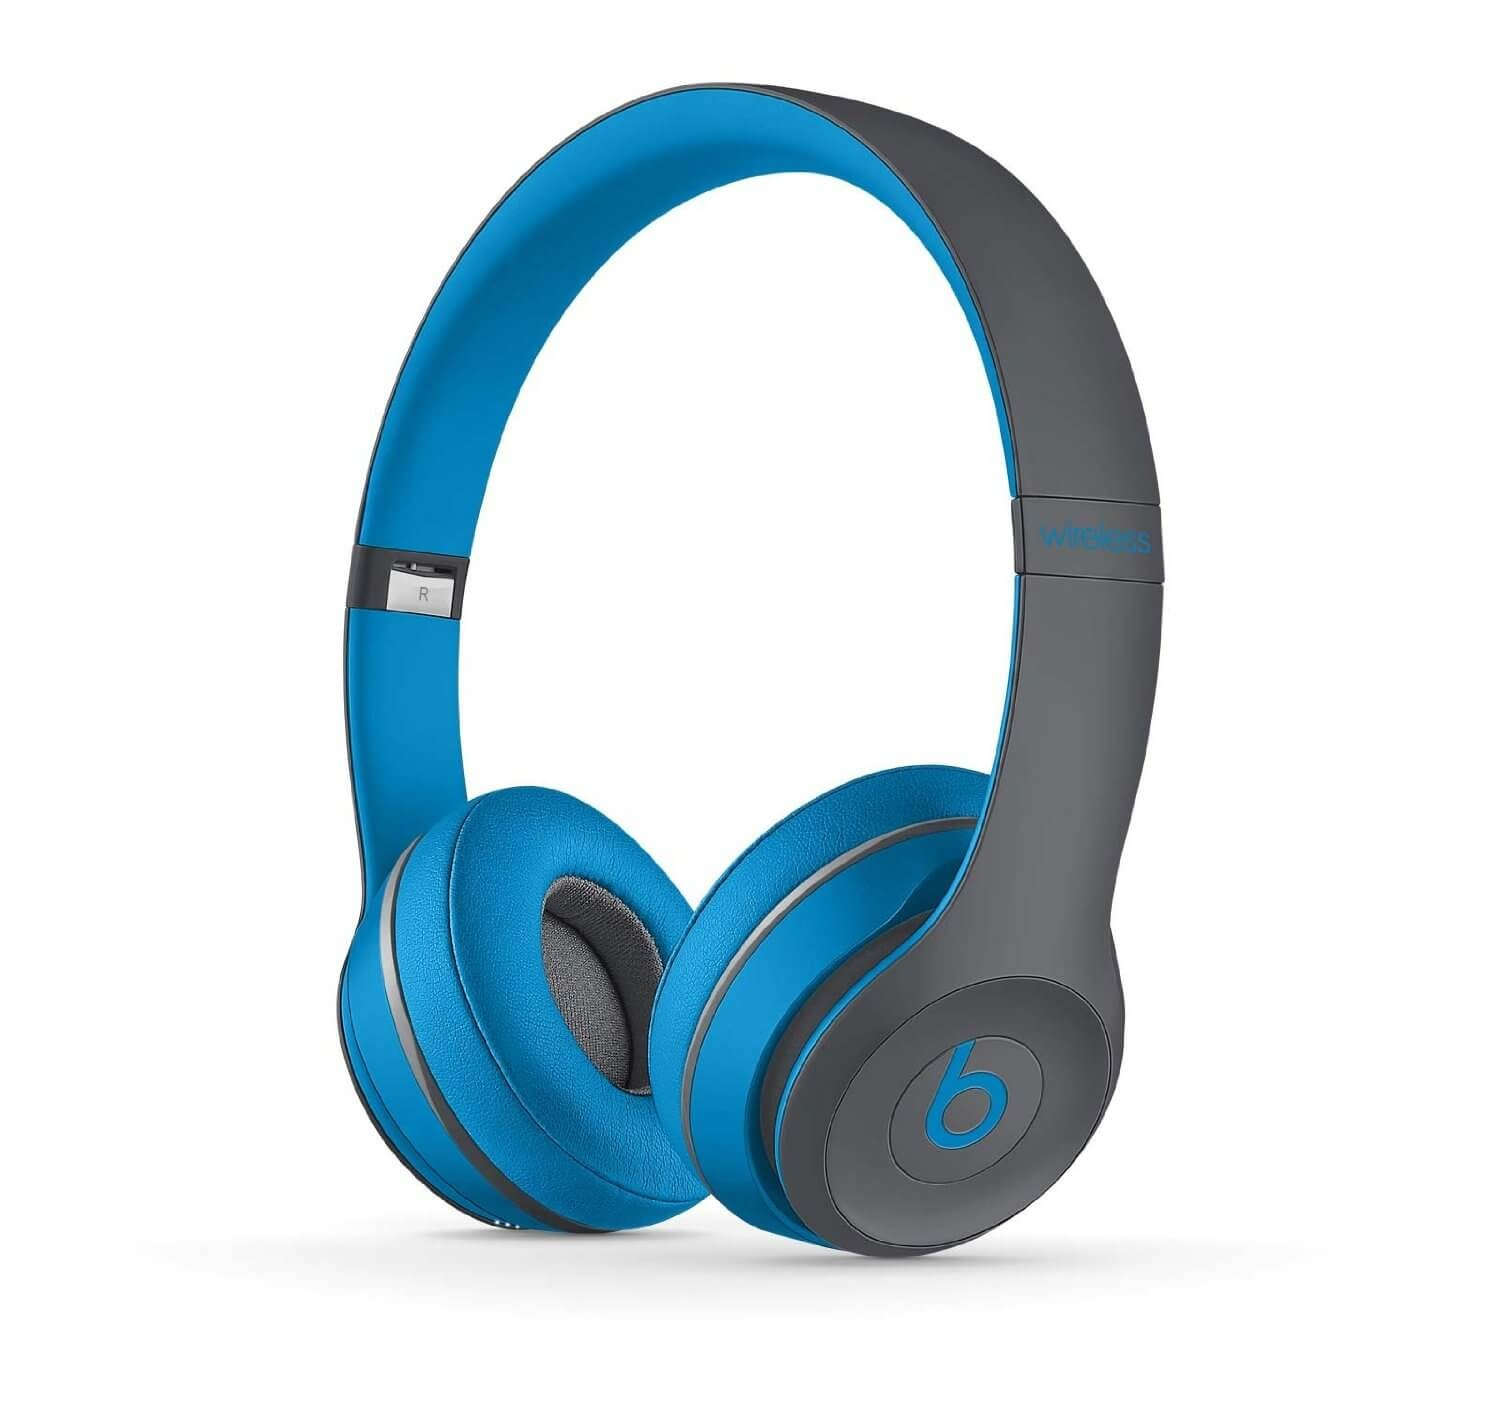 Apple Beats by Dr. Dre Solo 2 Wireless On-Ear Headphones, Active Collection - Flash Blue